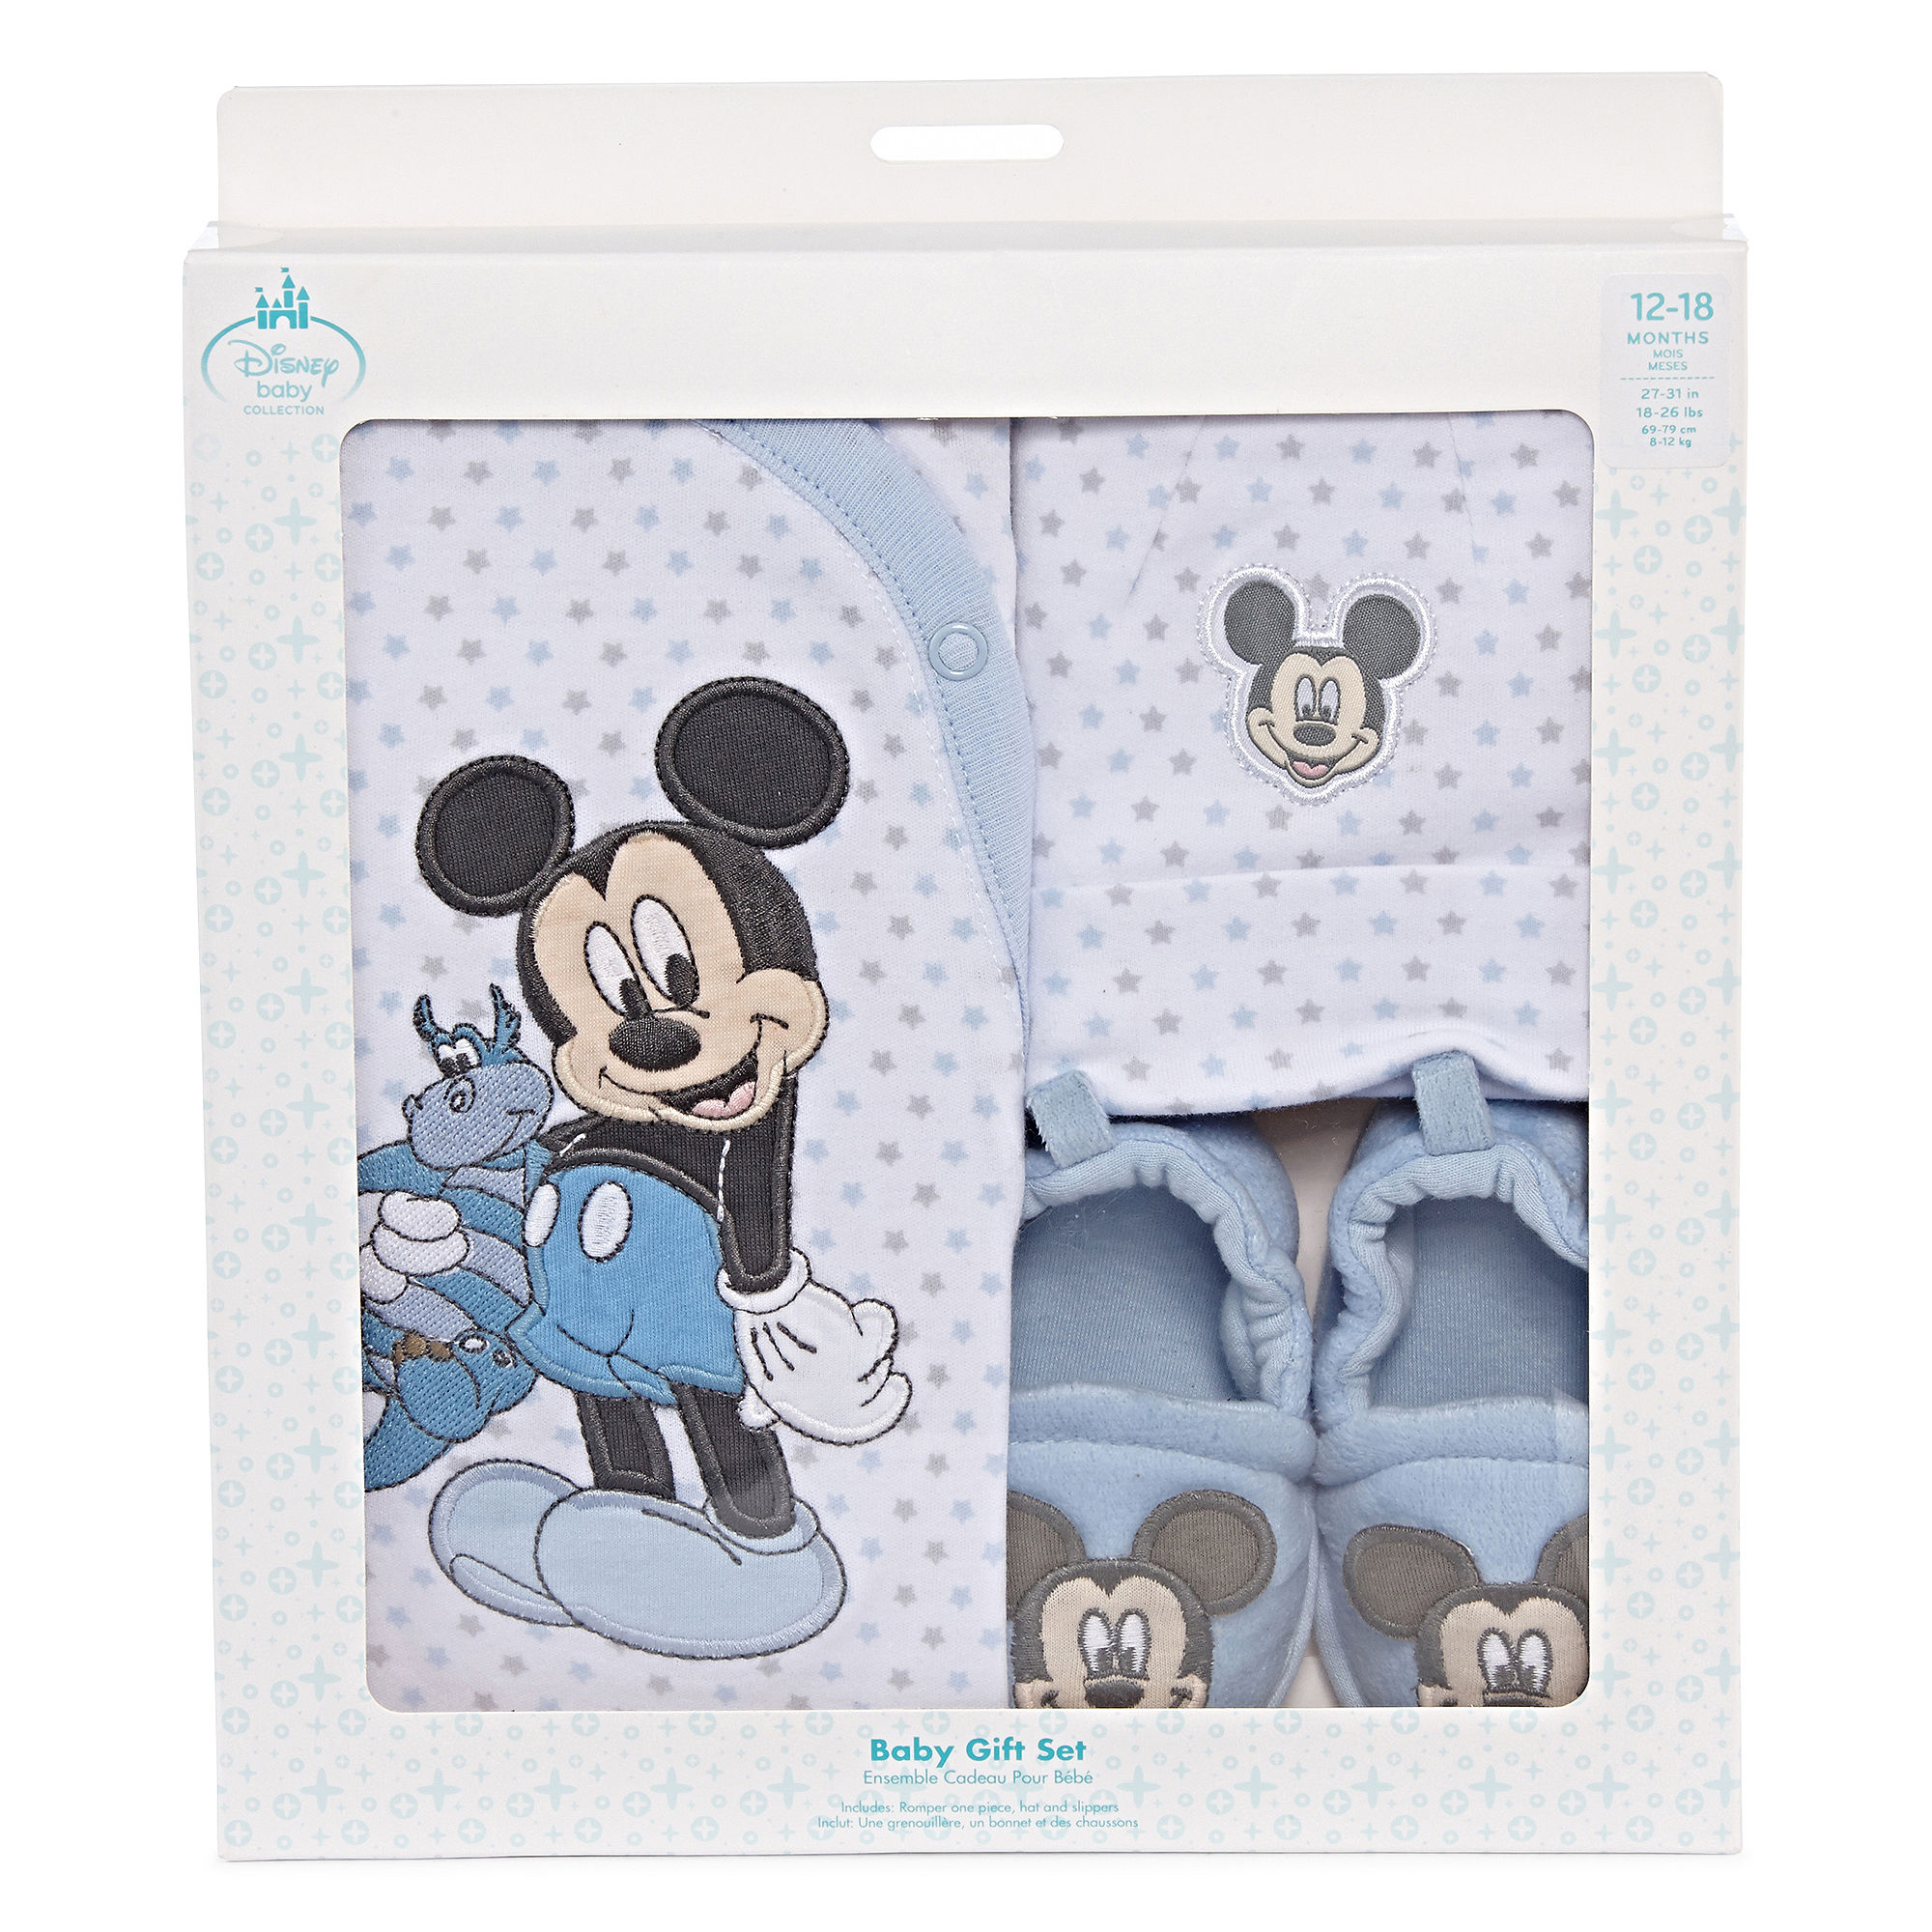 f84acd1d7 UPC 887734077160 - Disney Baby Collection Mickey Mouse Gift Set ...